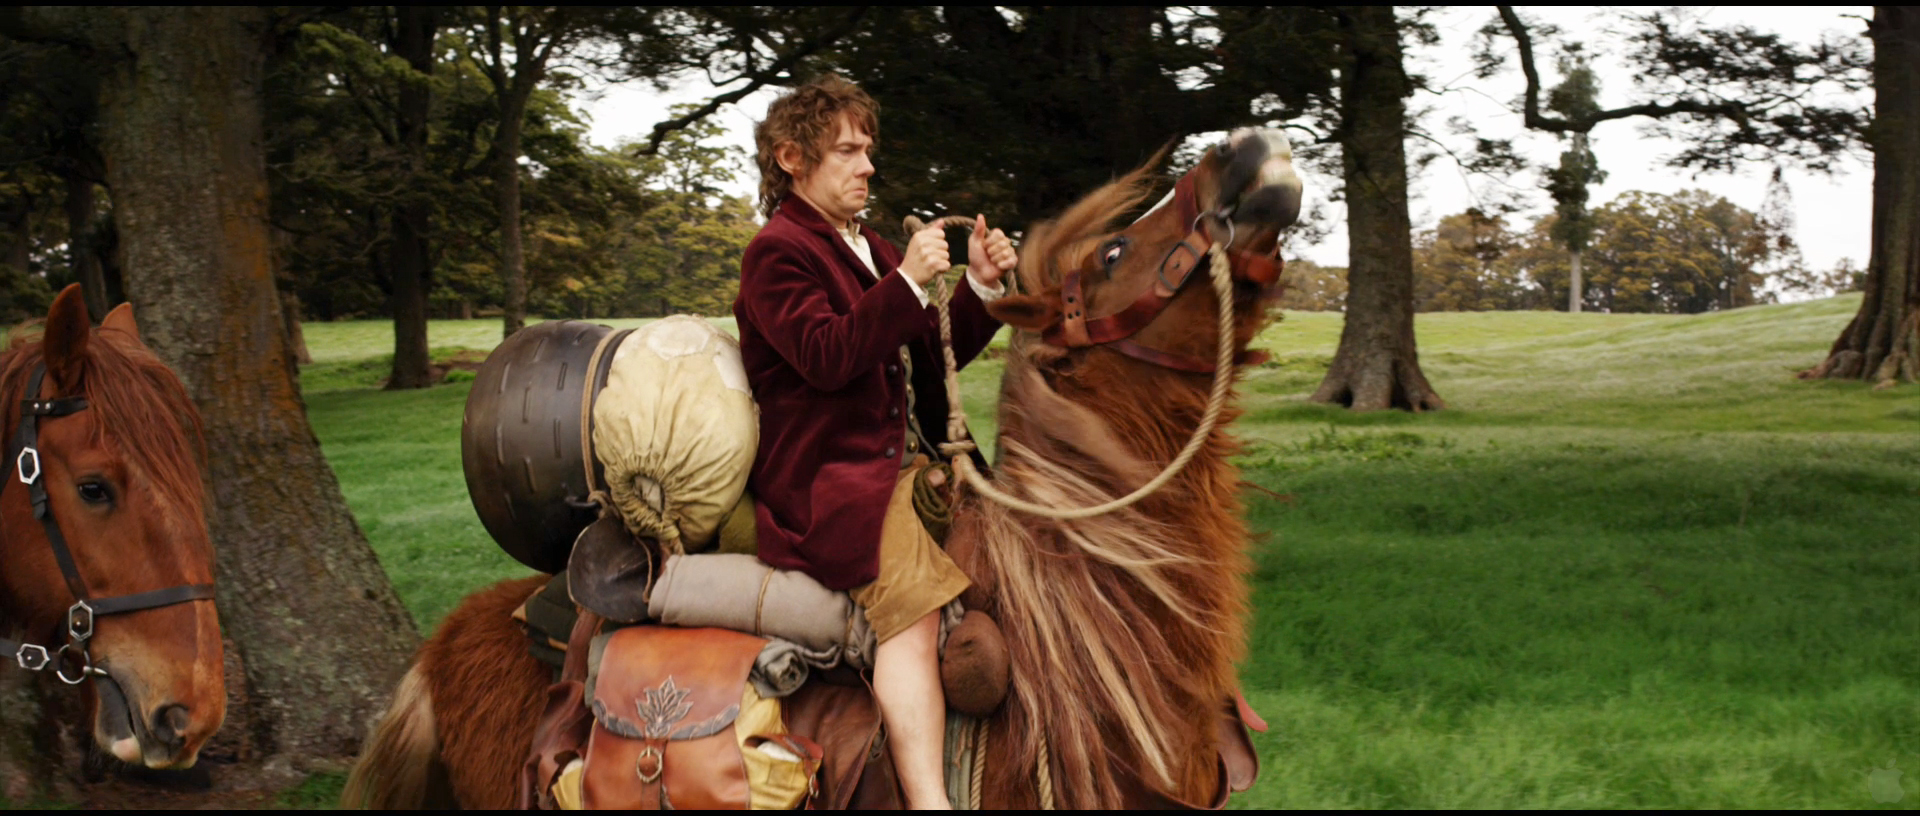 [Image of Bilbo on pony]